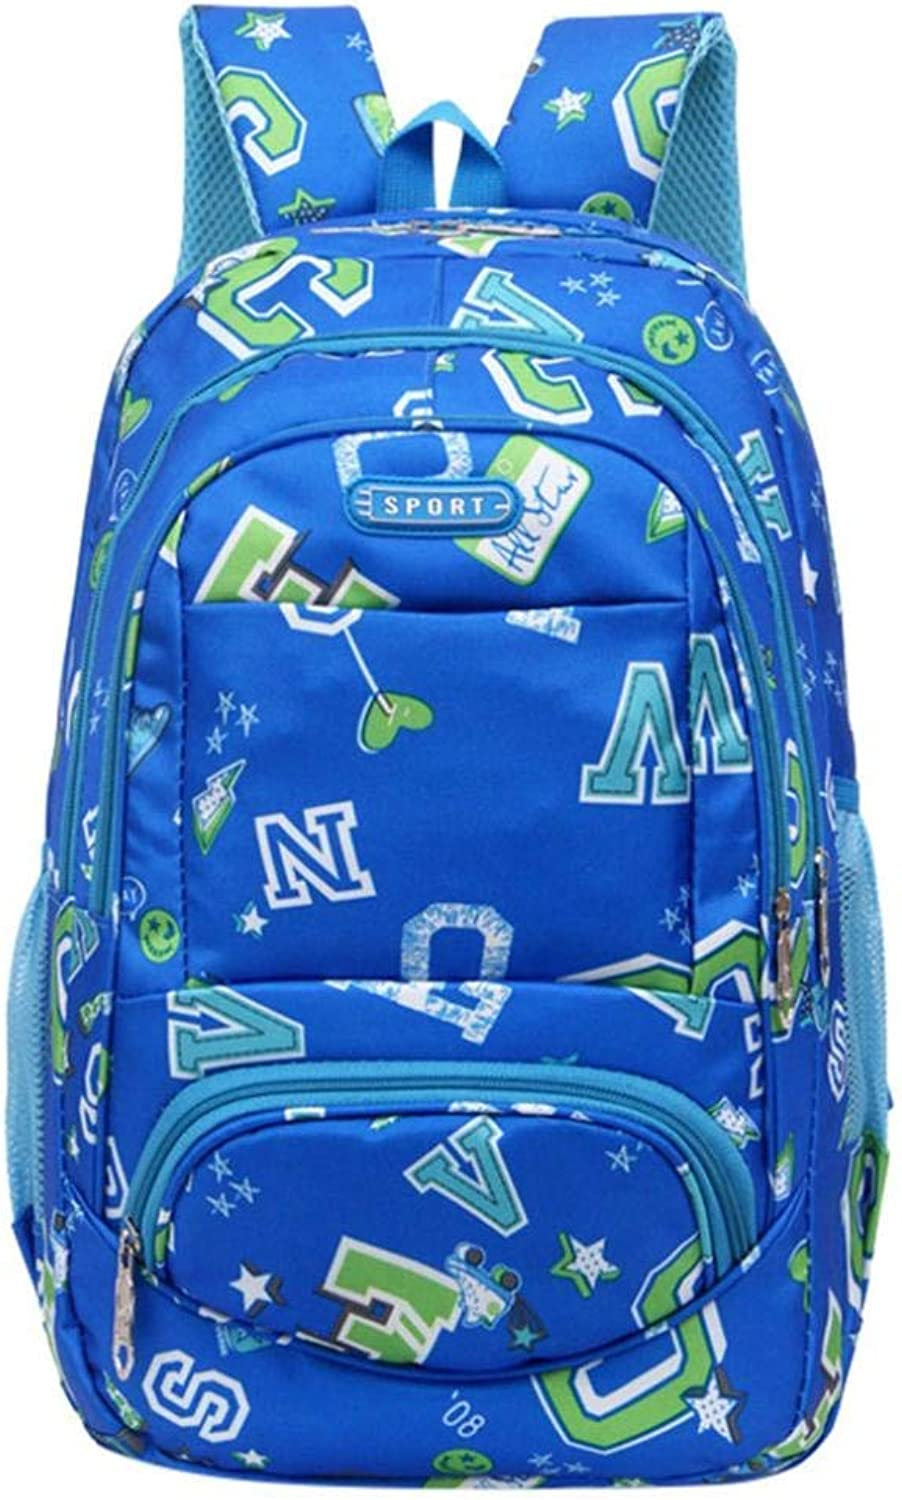 School Backpack Backpack for Teens Letter Print Comfy Burden Reduction School Bag Double Shoulder Bag (color   blueee)